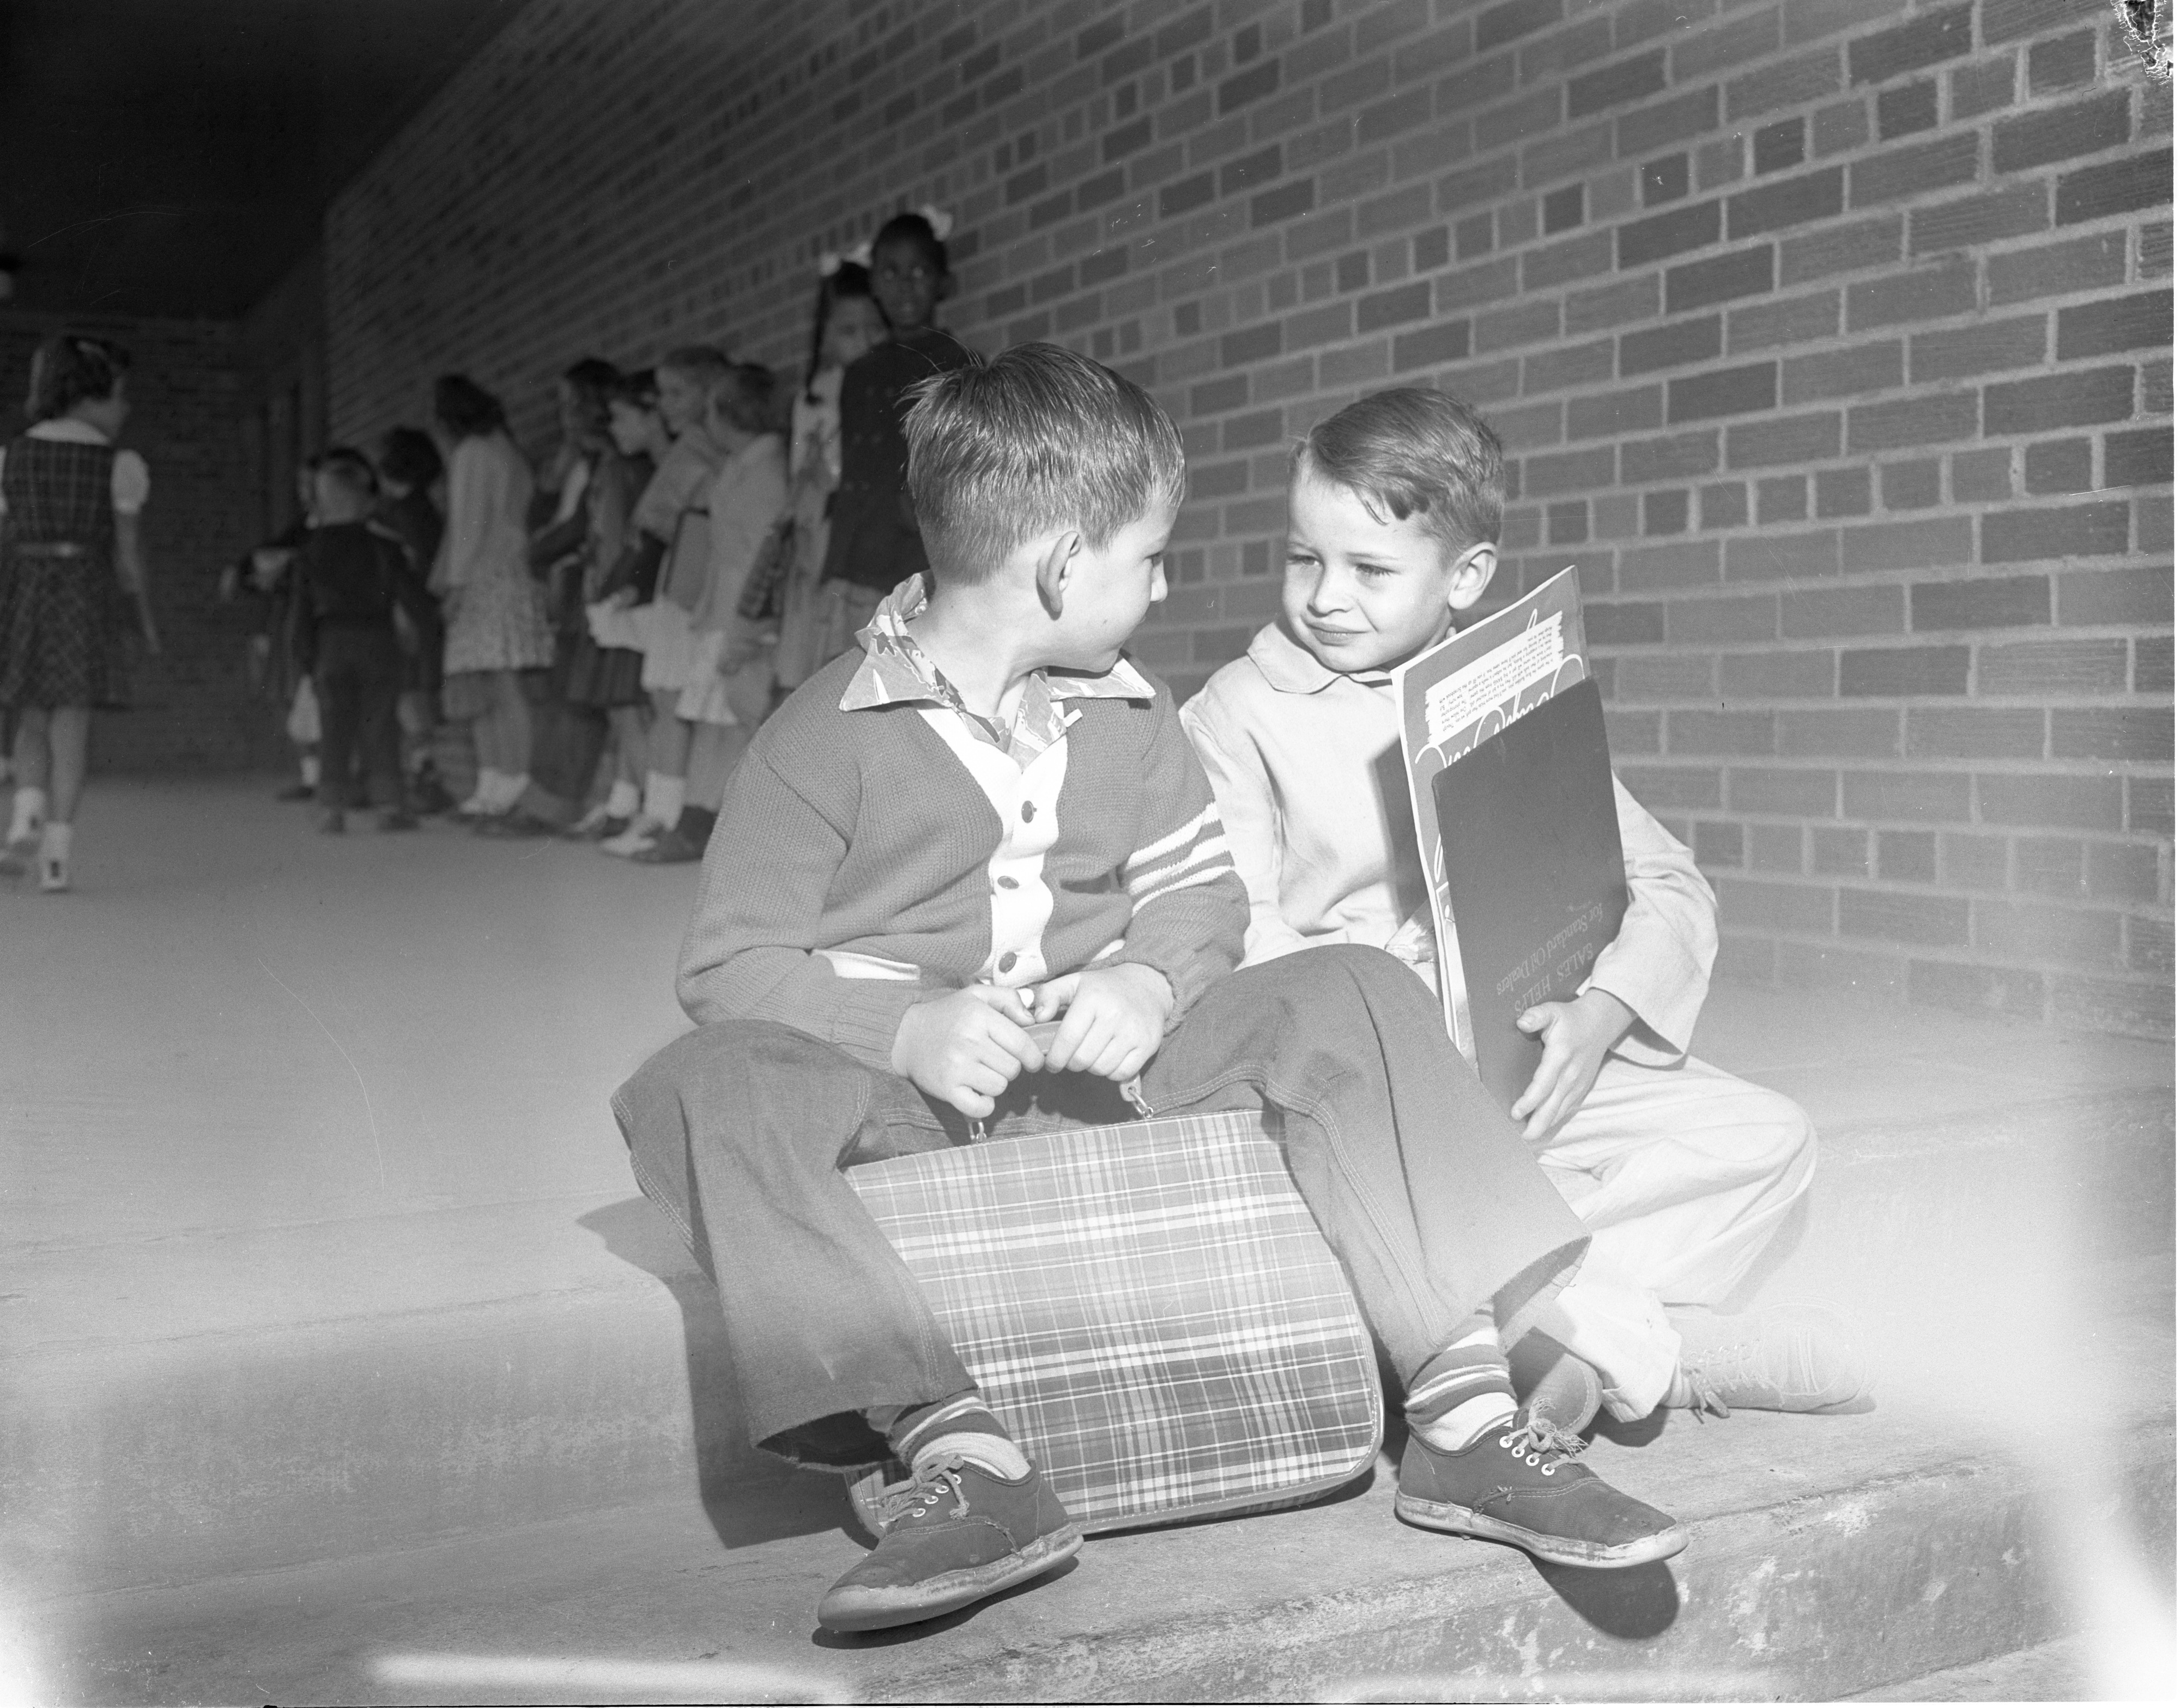 Students On The First Day Of School At Chapelle School, September 1954 image